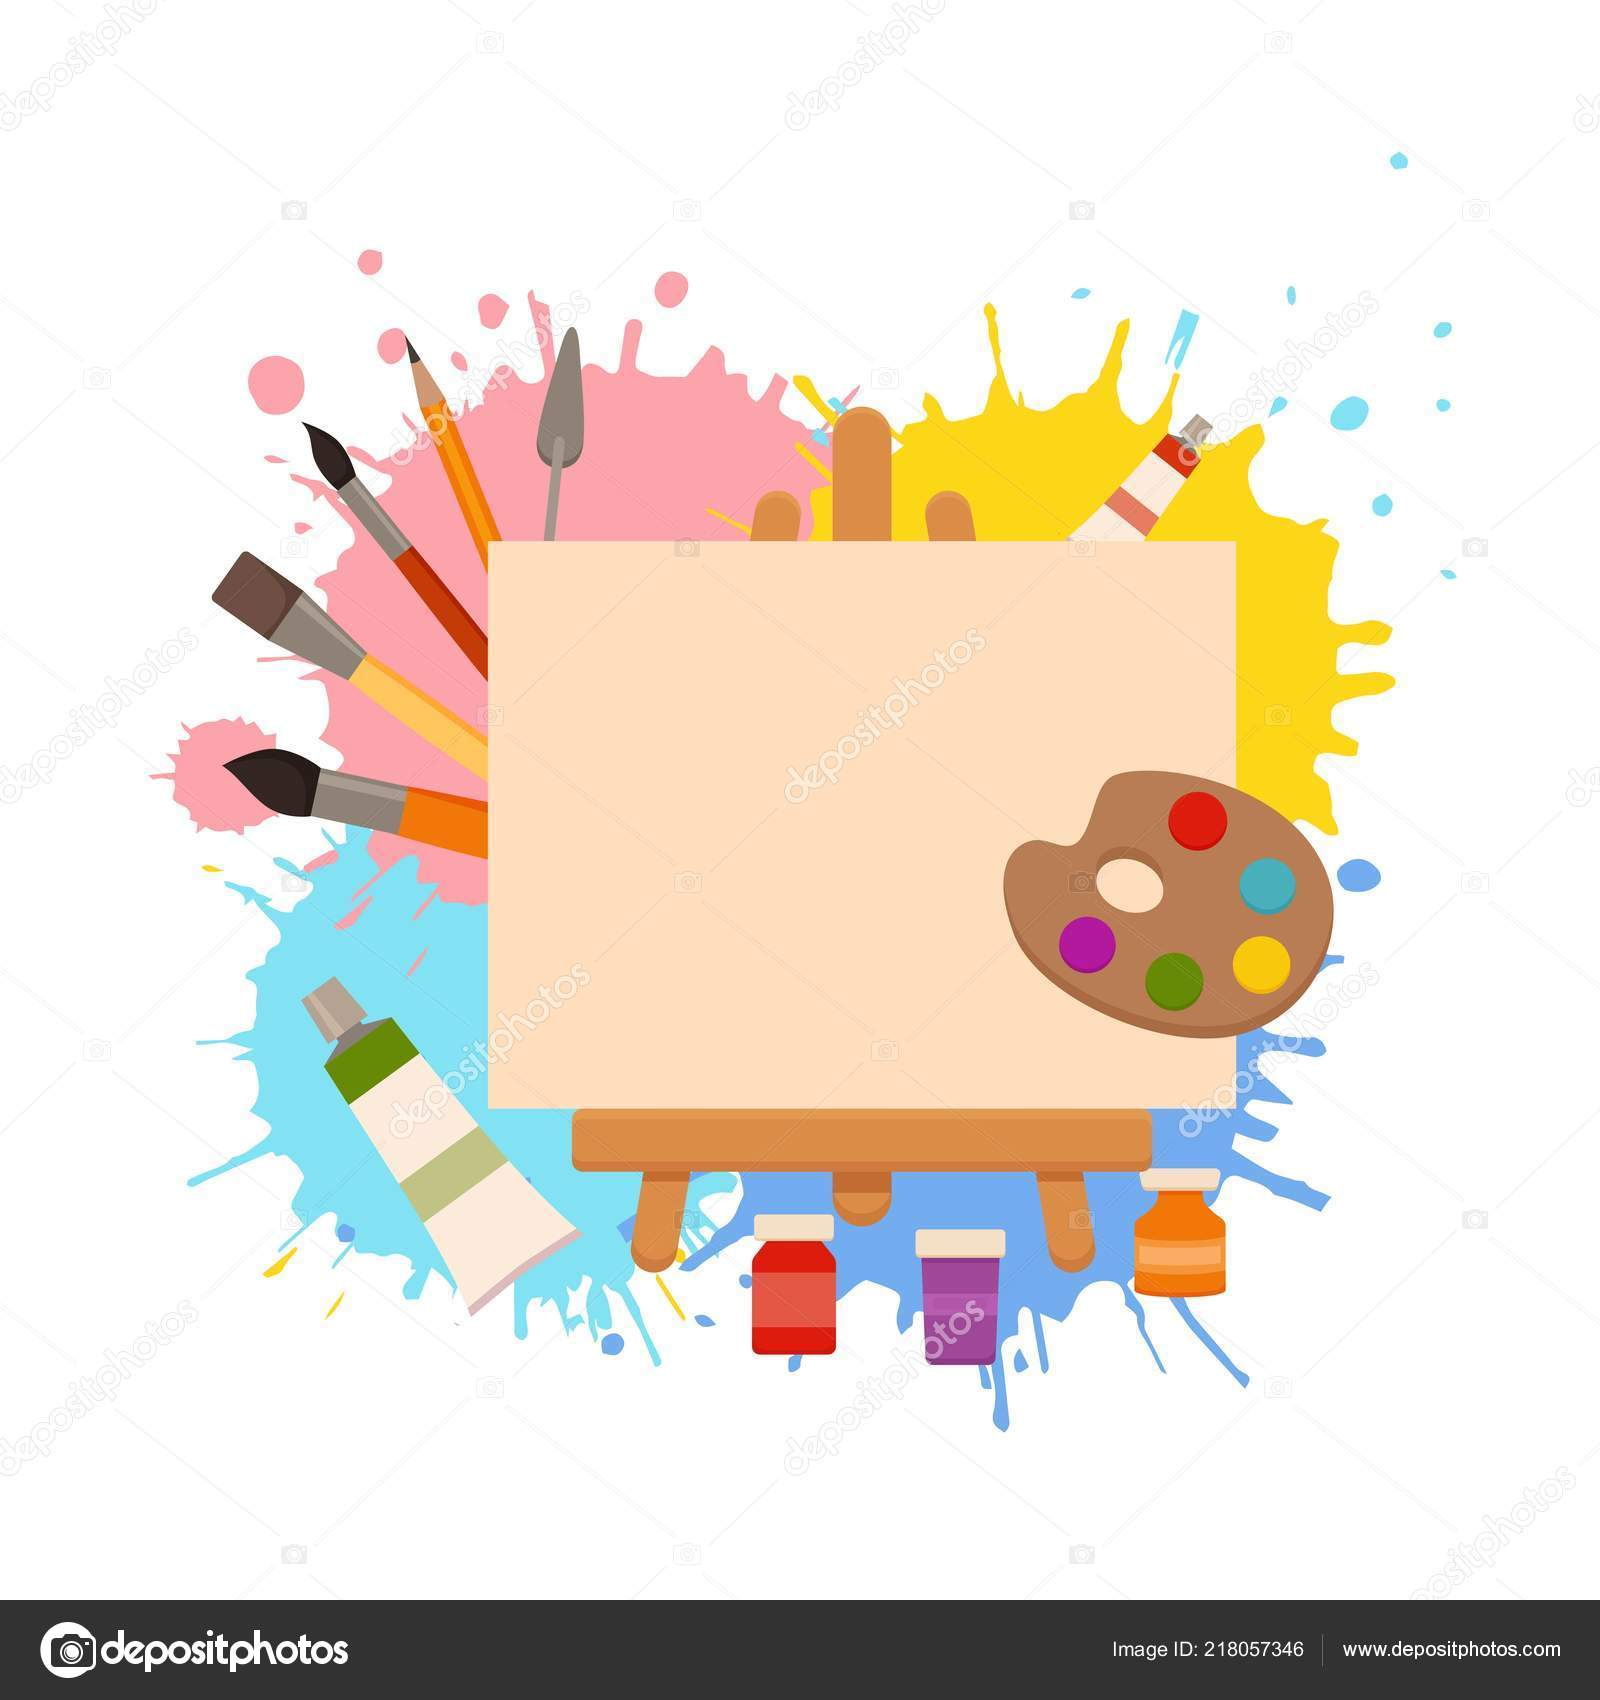 Painting Tools Elements Cartoon Colorful Vector Concept Vector Image By C Oligliya Vector Stock 218057346